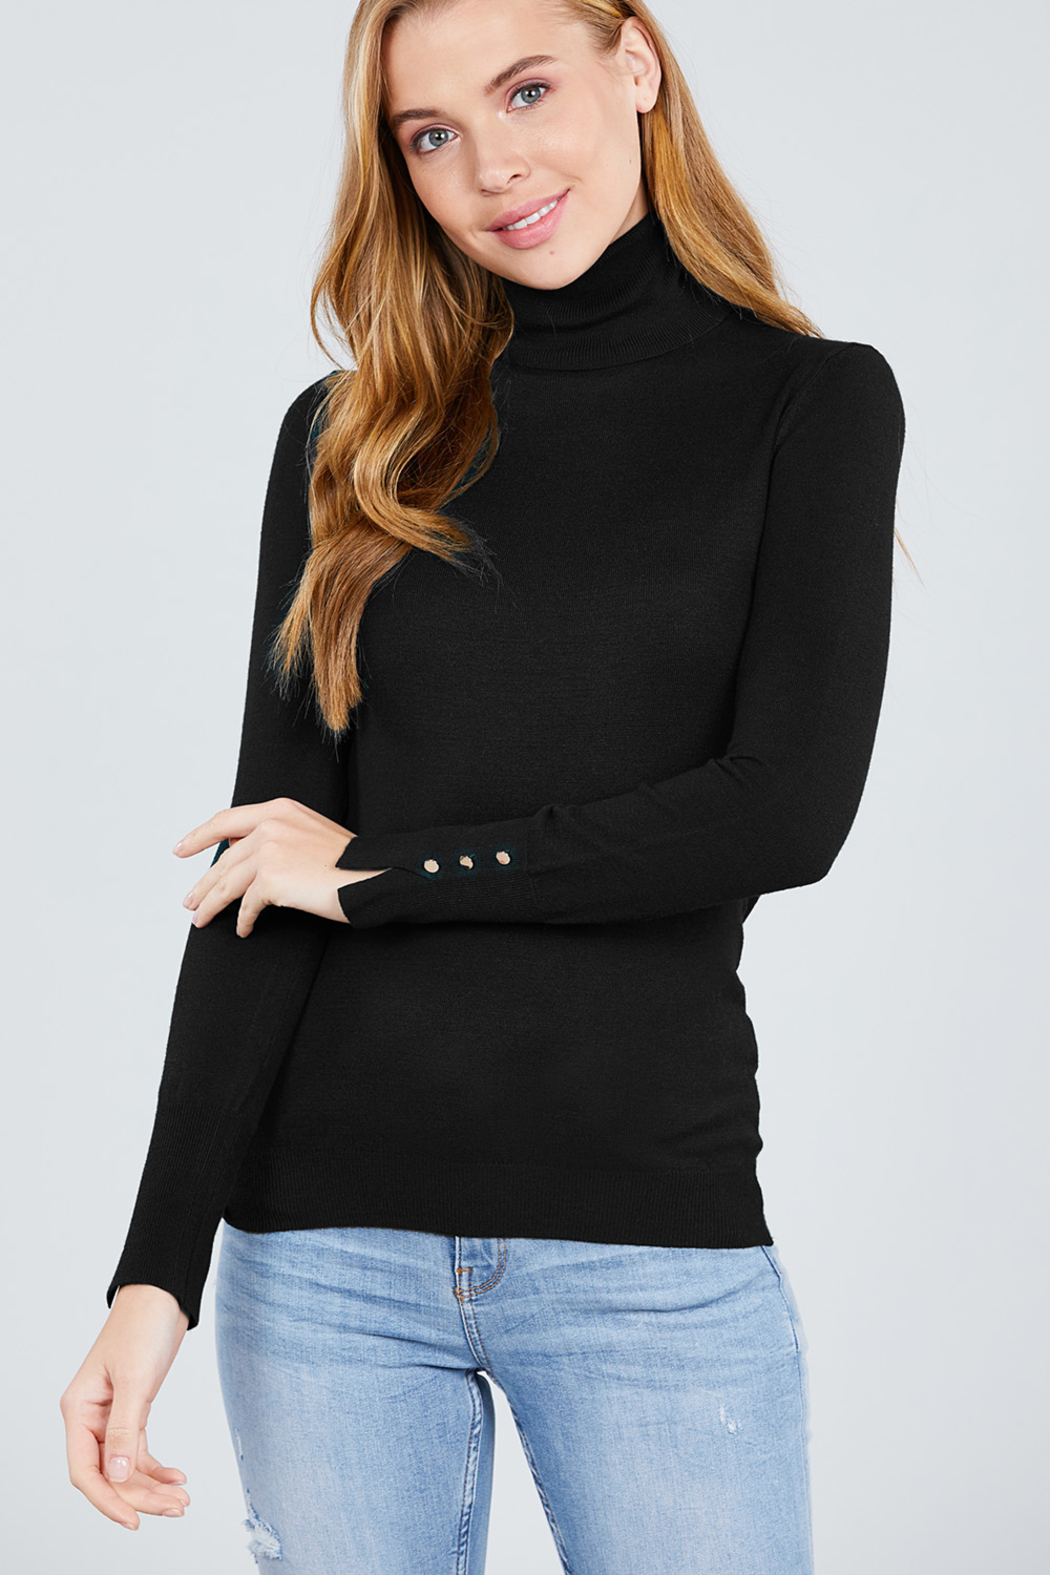 Active Basic Turtle-Neck light weight sweater - Main Image